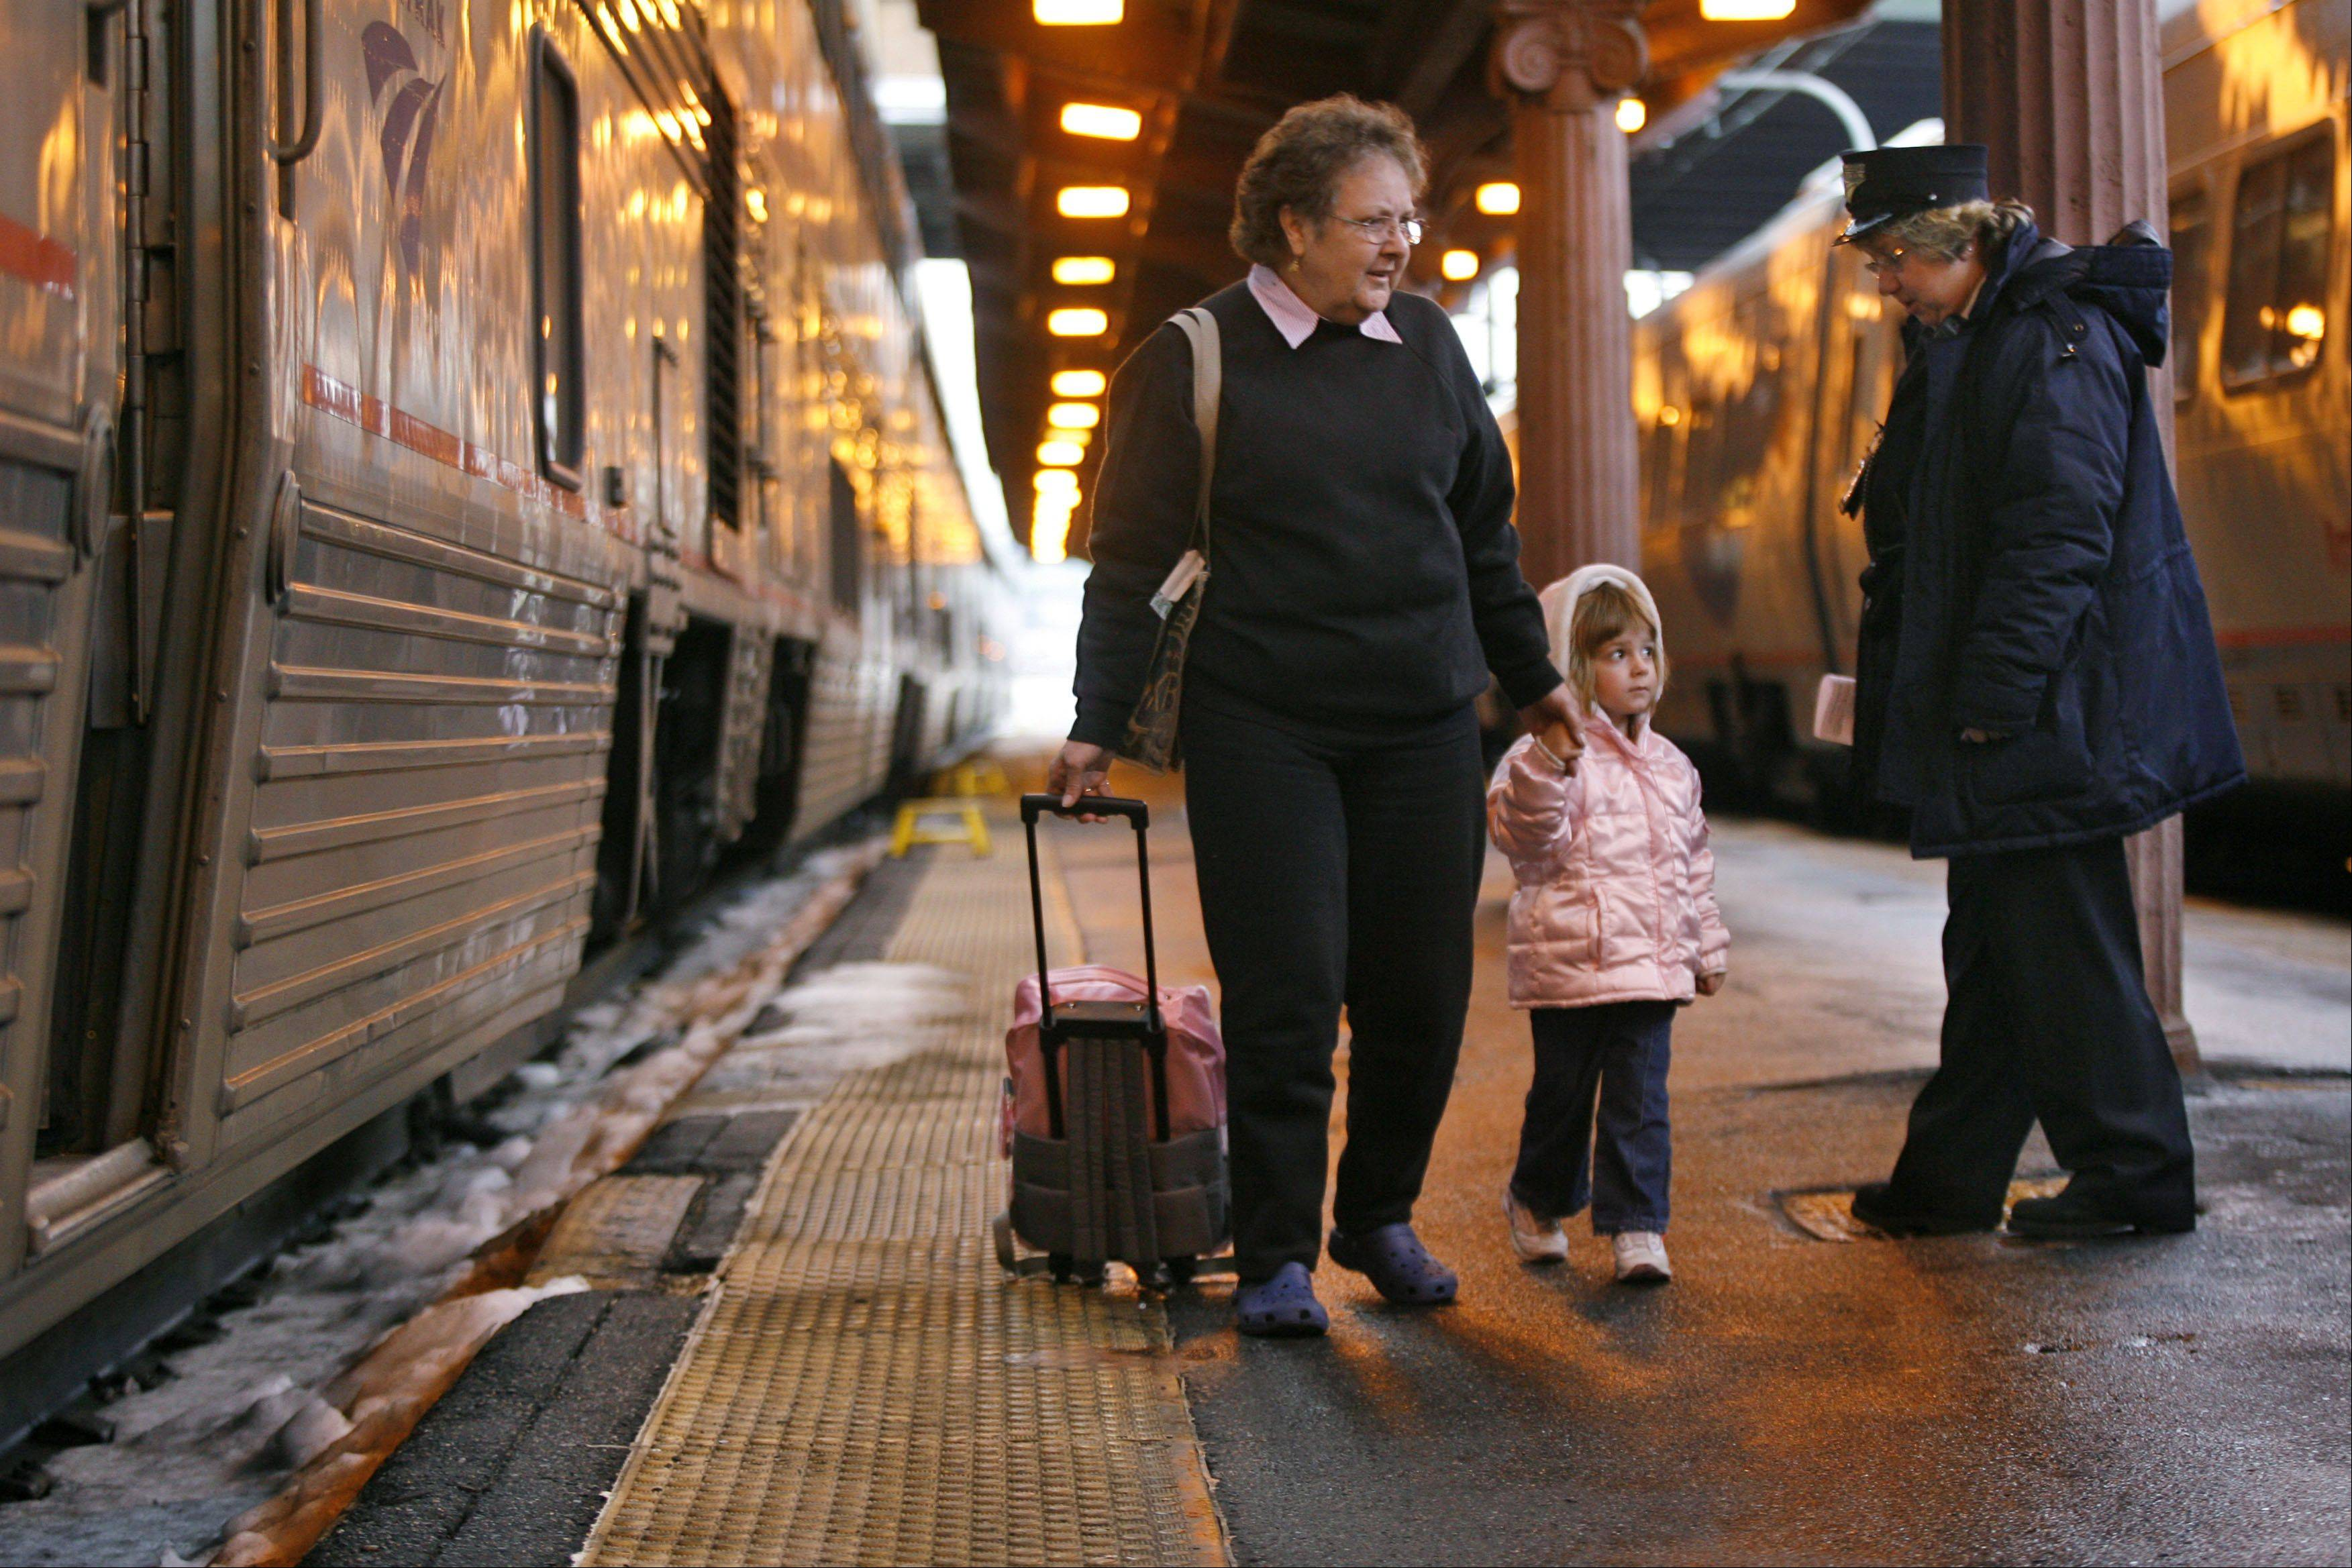 Anticipating heavy rain associated with Hurricane Sandy, Amtrak is curtailing its service along the Eastern Seaboard.